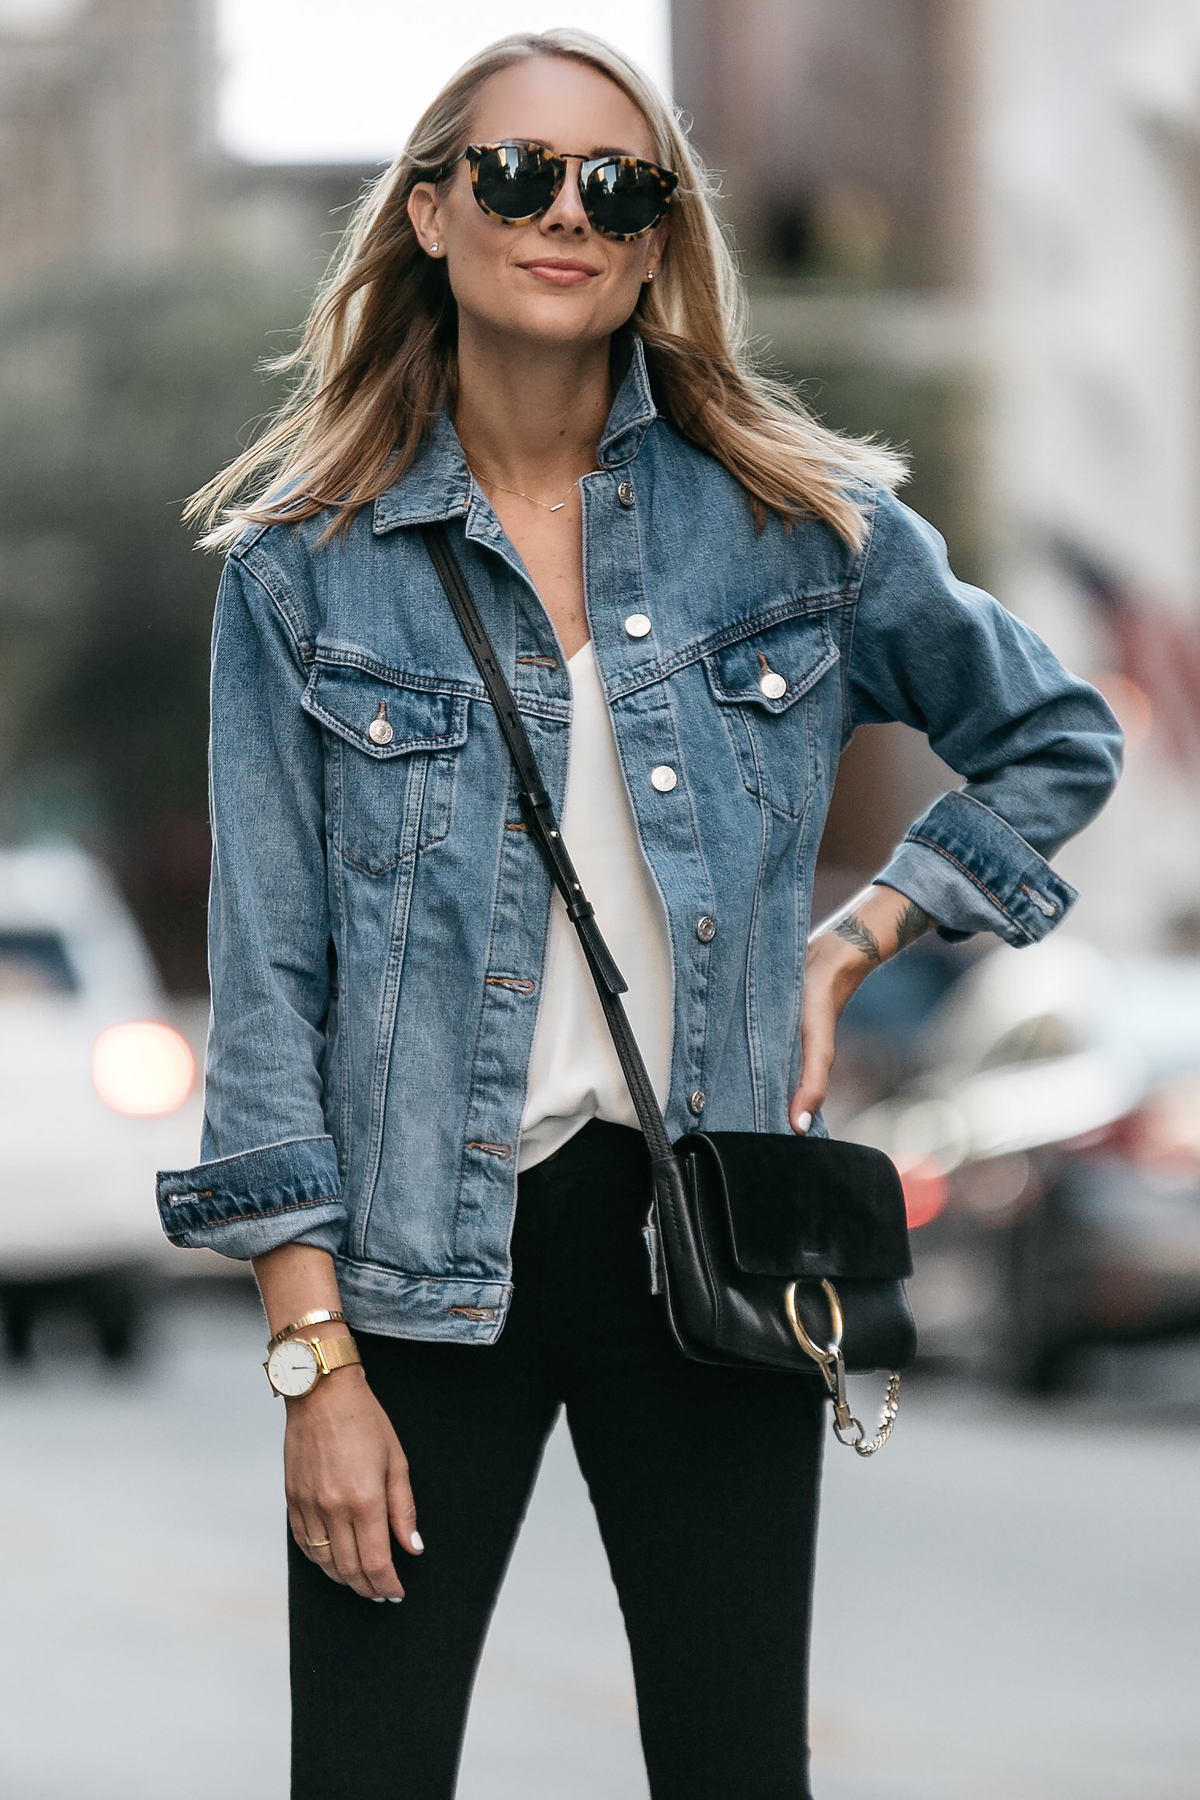 Blonde Woman Wearing Topshop Oversized Denim Jacket Chloe Faye Handbag Fashion Jackson Dallas Blogger Fashion Blogger Street Style